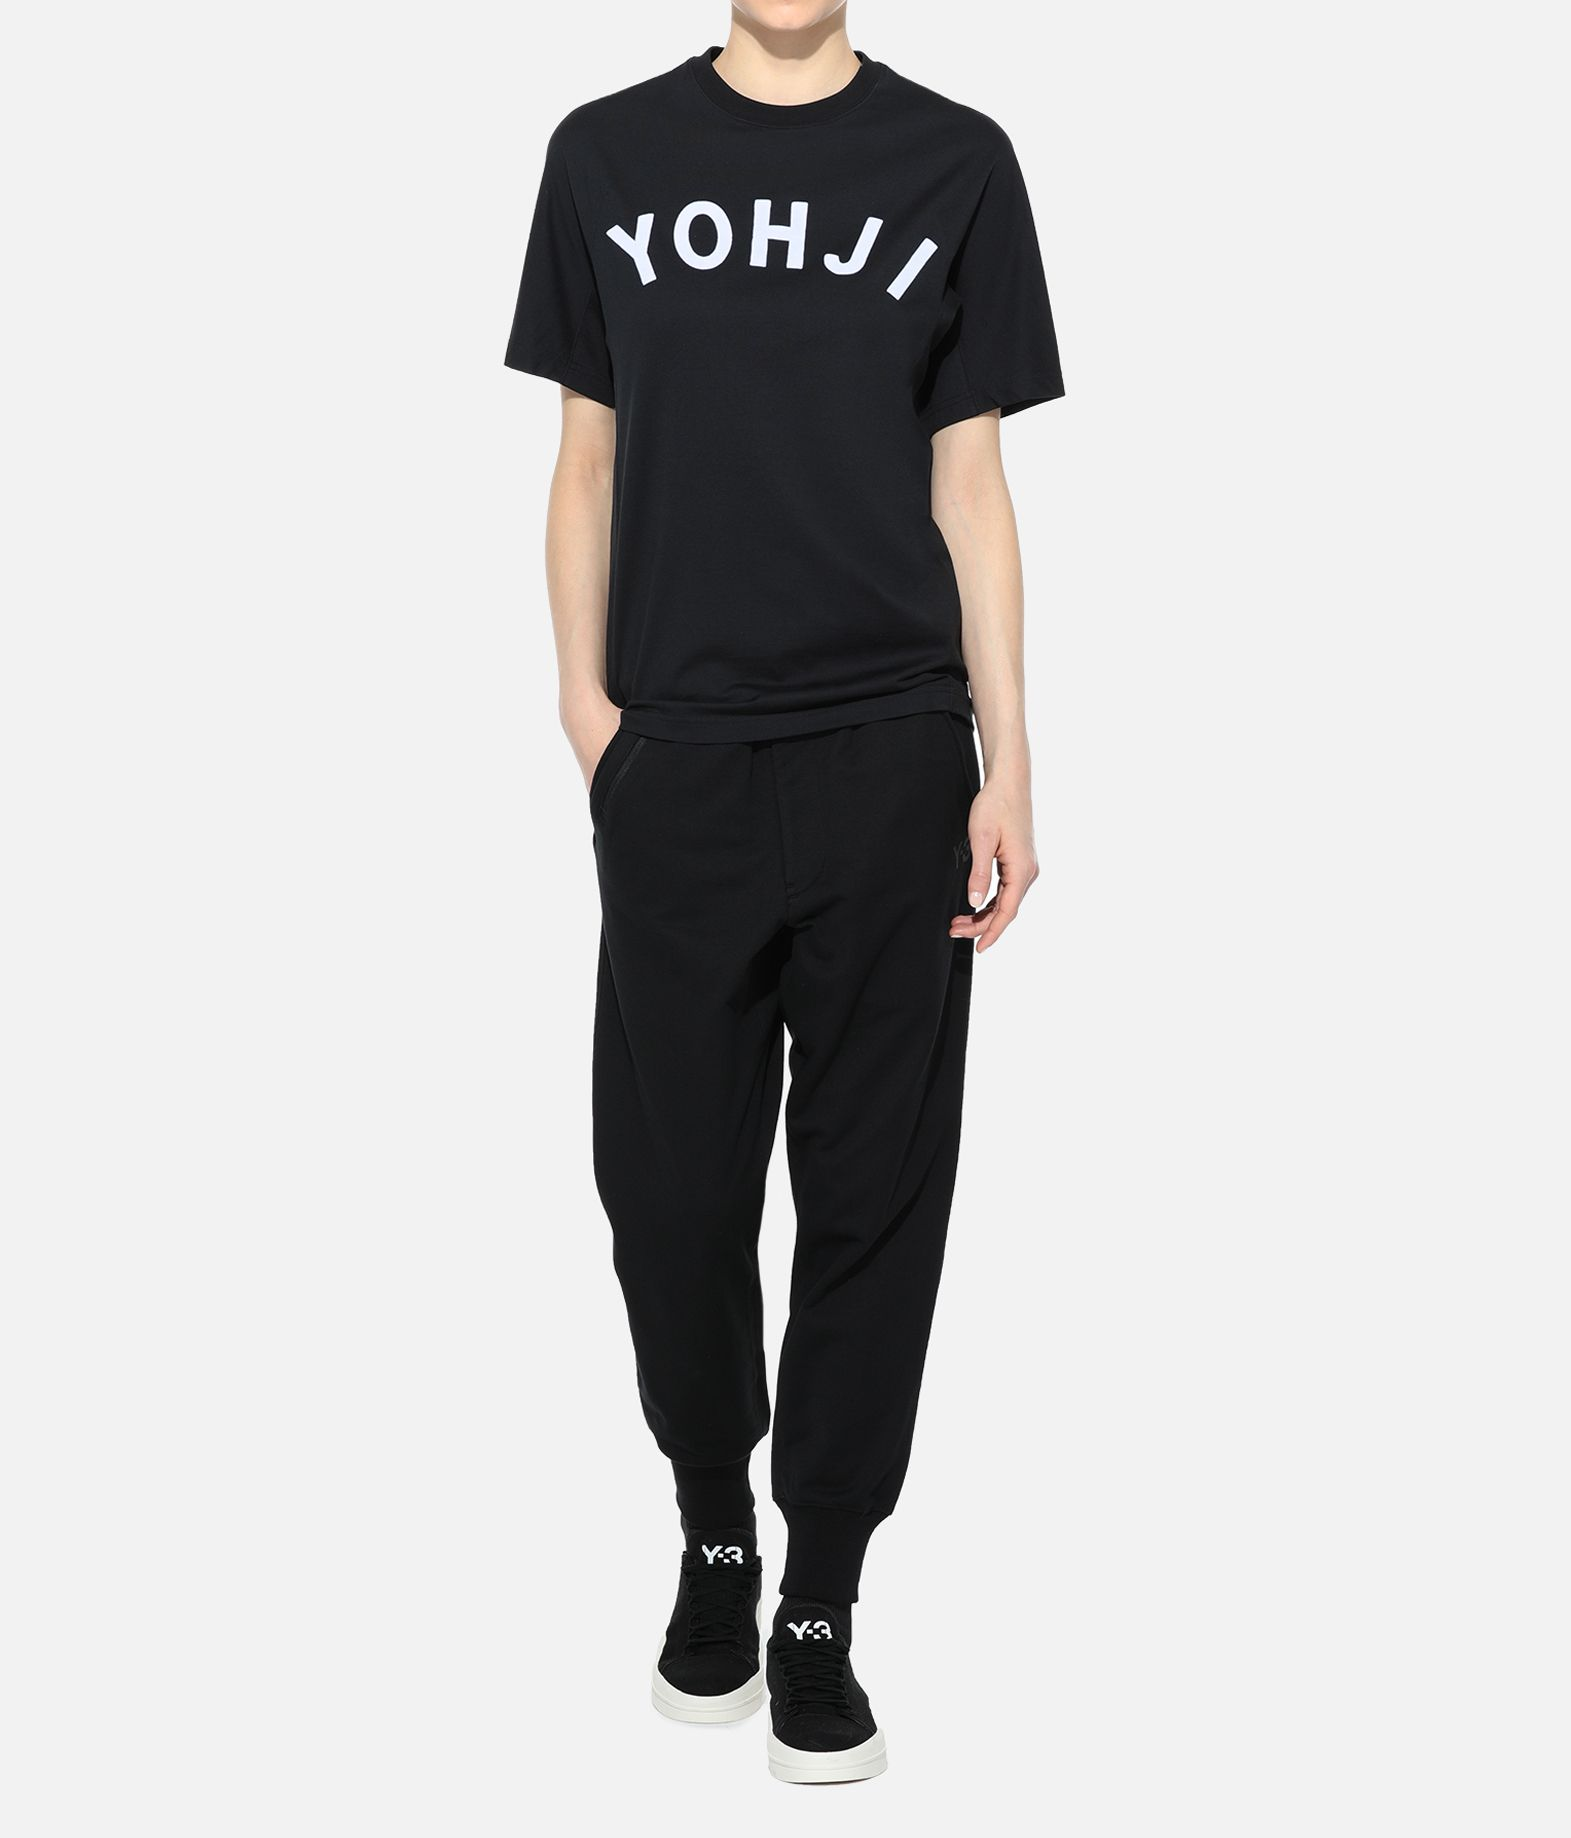 Y-3 Y-3 Yohji Letters Tee Short sleeve t-shirt Woman a